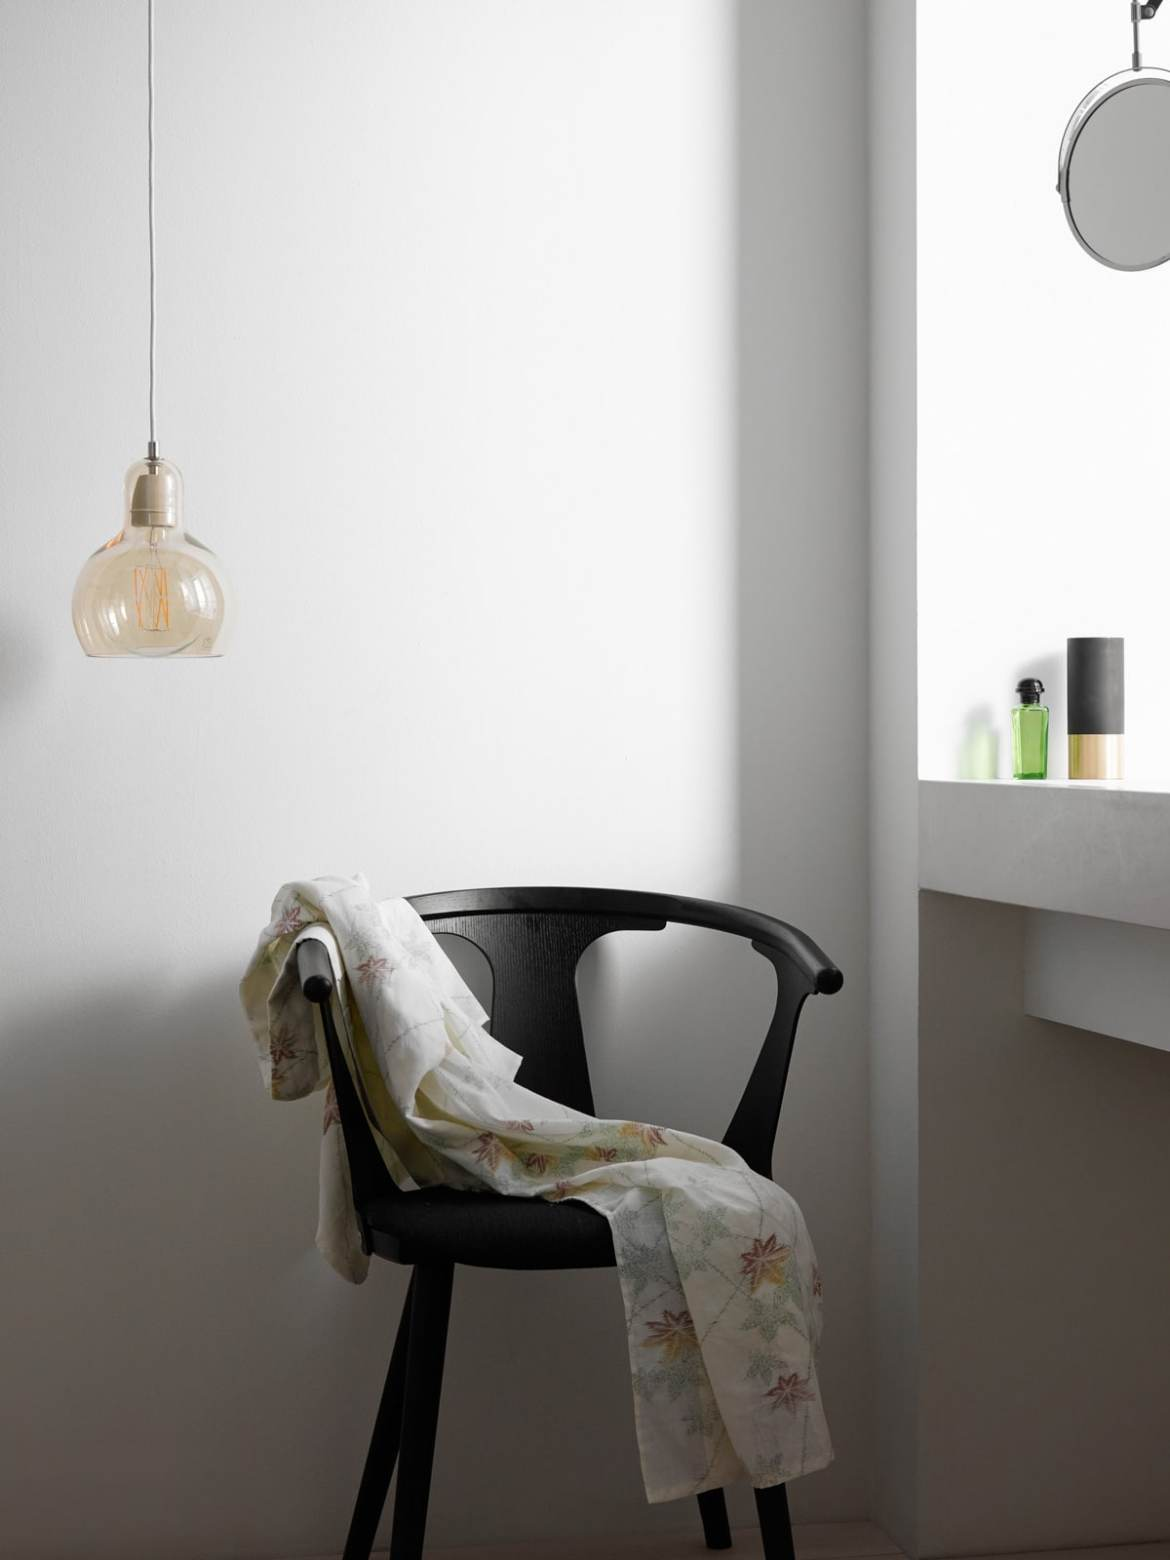 DesignOrt Blog: Die Designwelt von &tradition Mega Bulb SR2 Gold &tradition